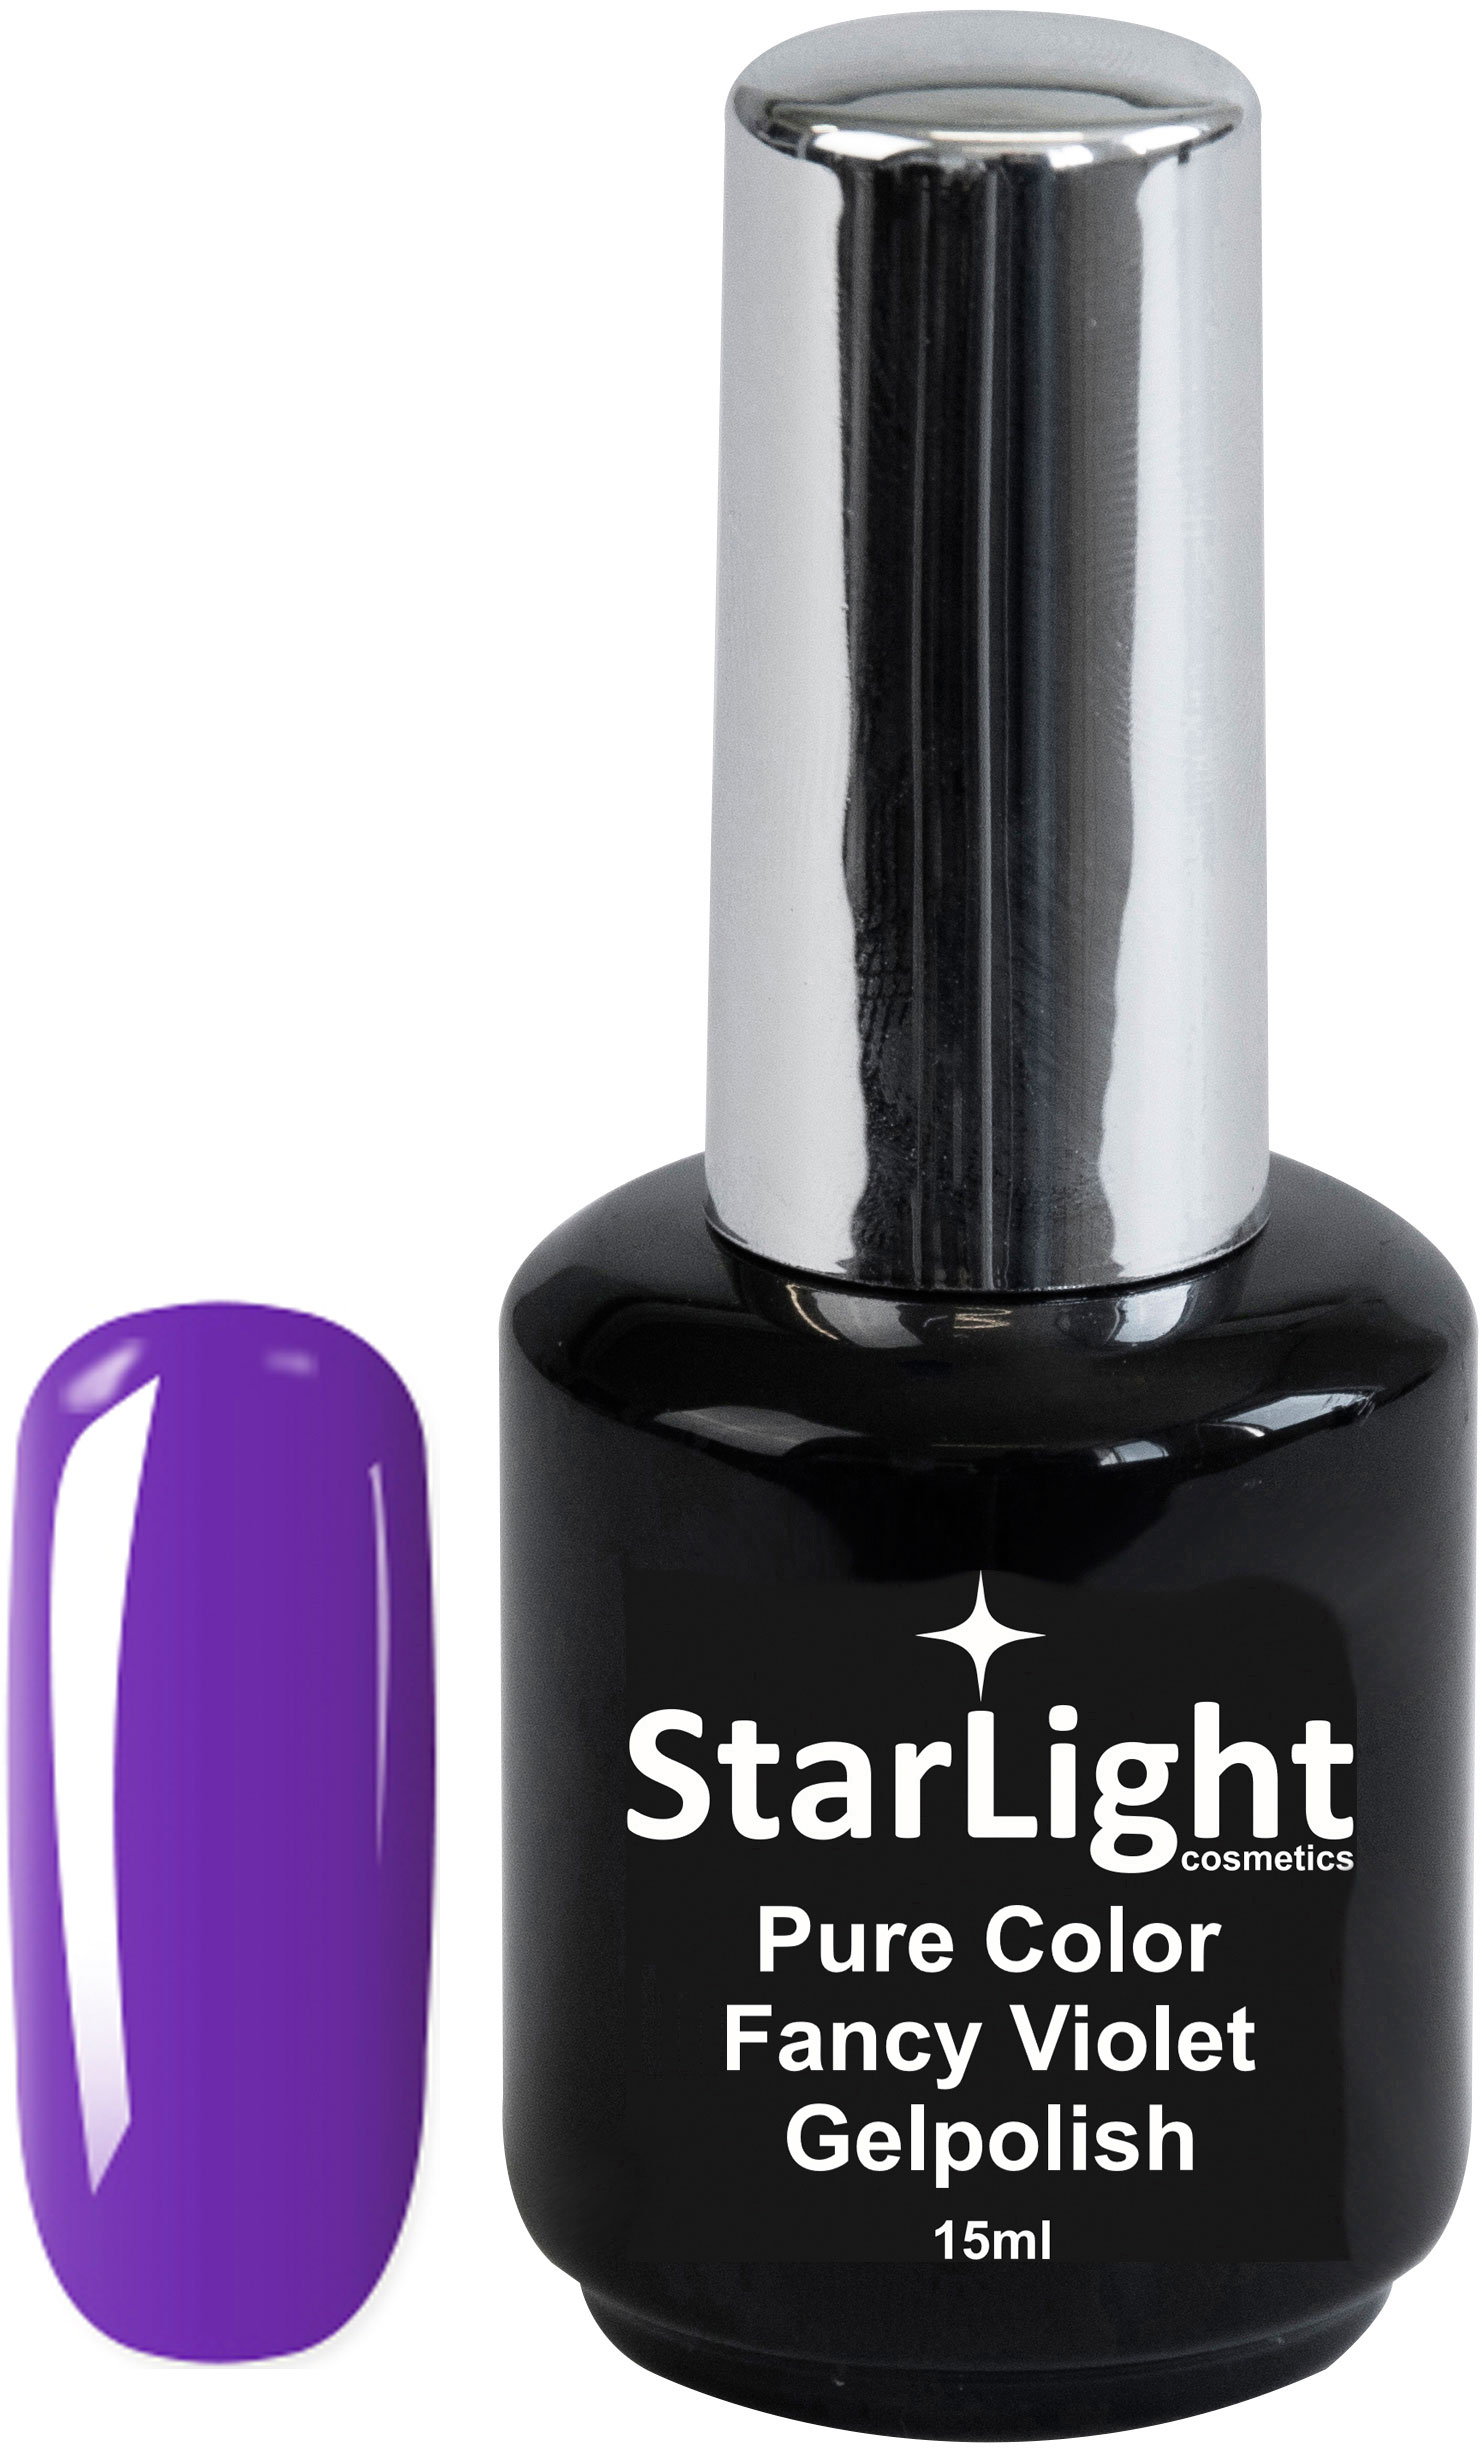 Naglar Gelpolish Pure Color Fancy Violet - 15 ml